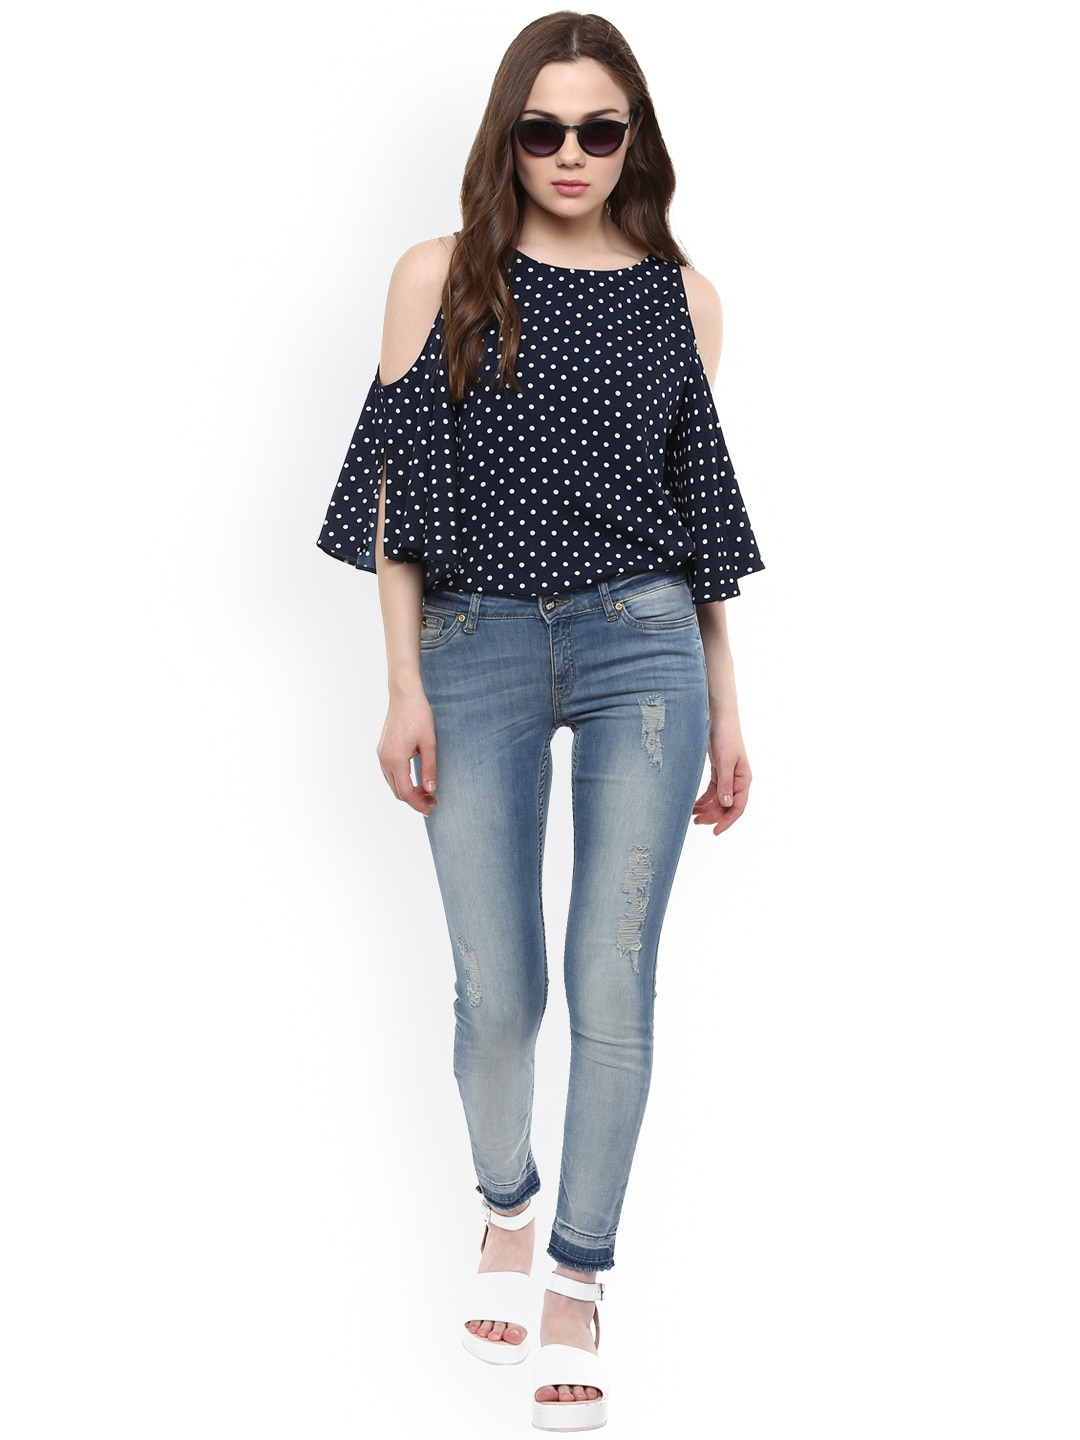 Women's Clothing Try on a new look with eBay fashion items from top brands in women's clothing, such as Ann Taylor, Chanel, and Michael Kors. Shop for deals to outfit your style.